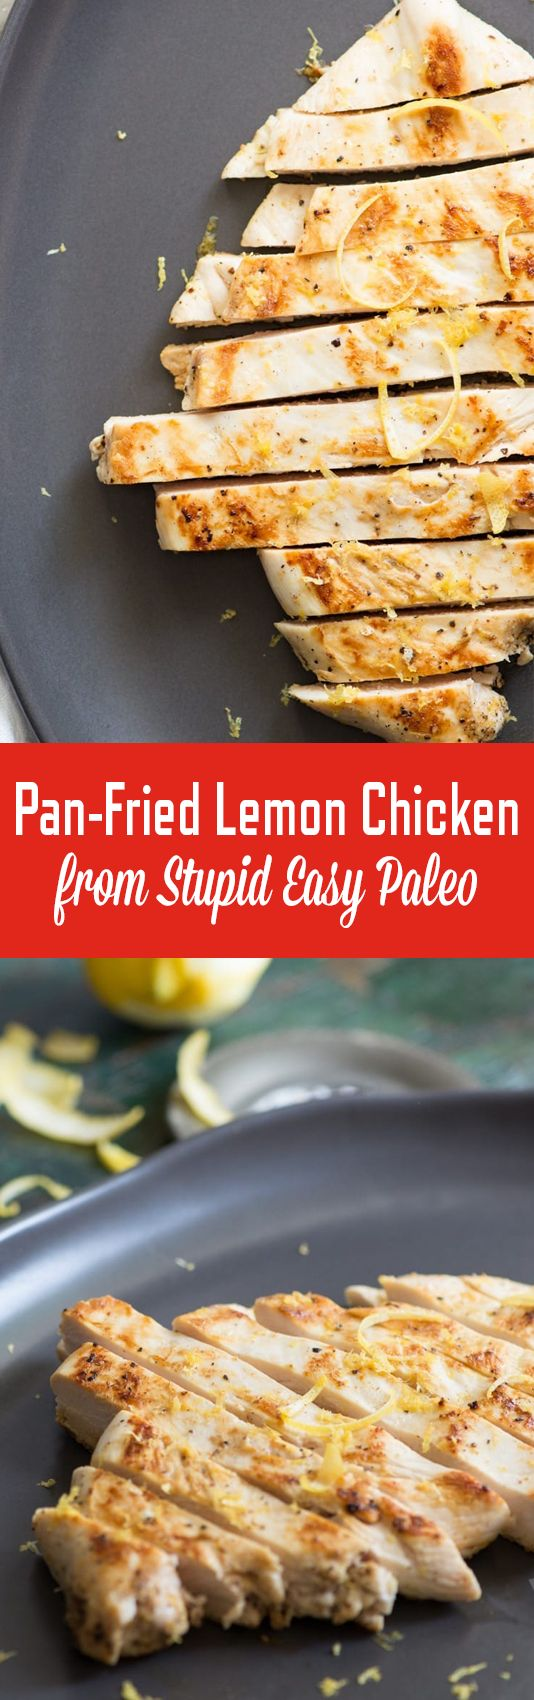 Easy Pan-Fried Lemon Chicken #justeatrealfood #stupideasypaleo